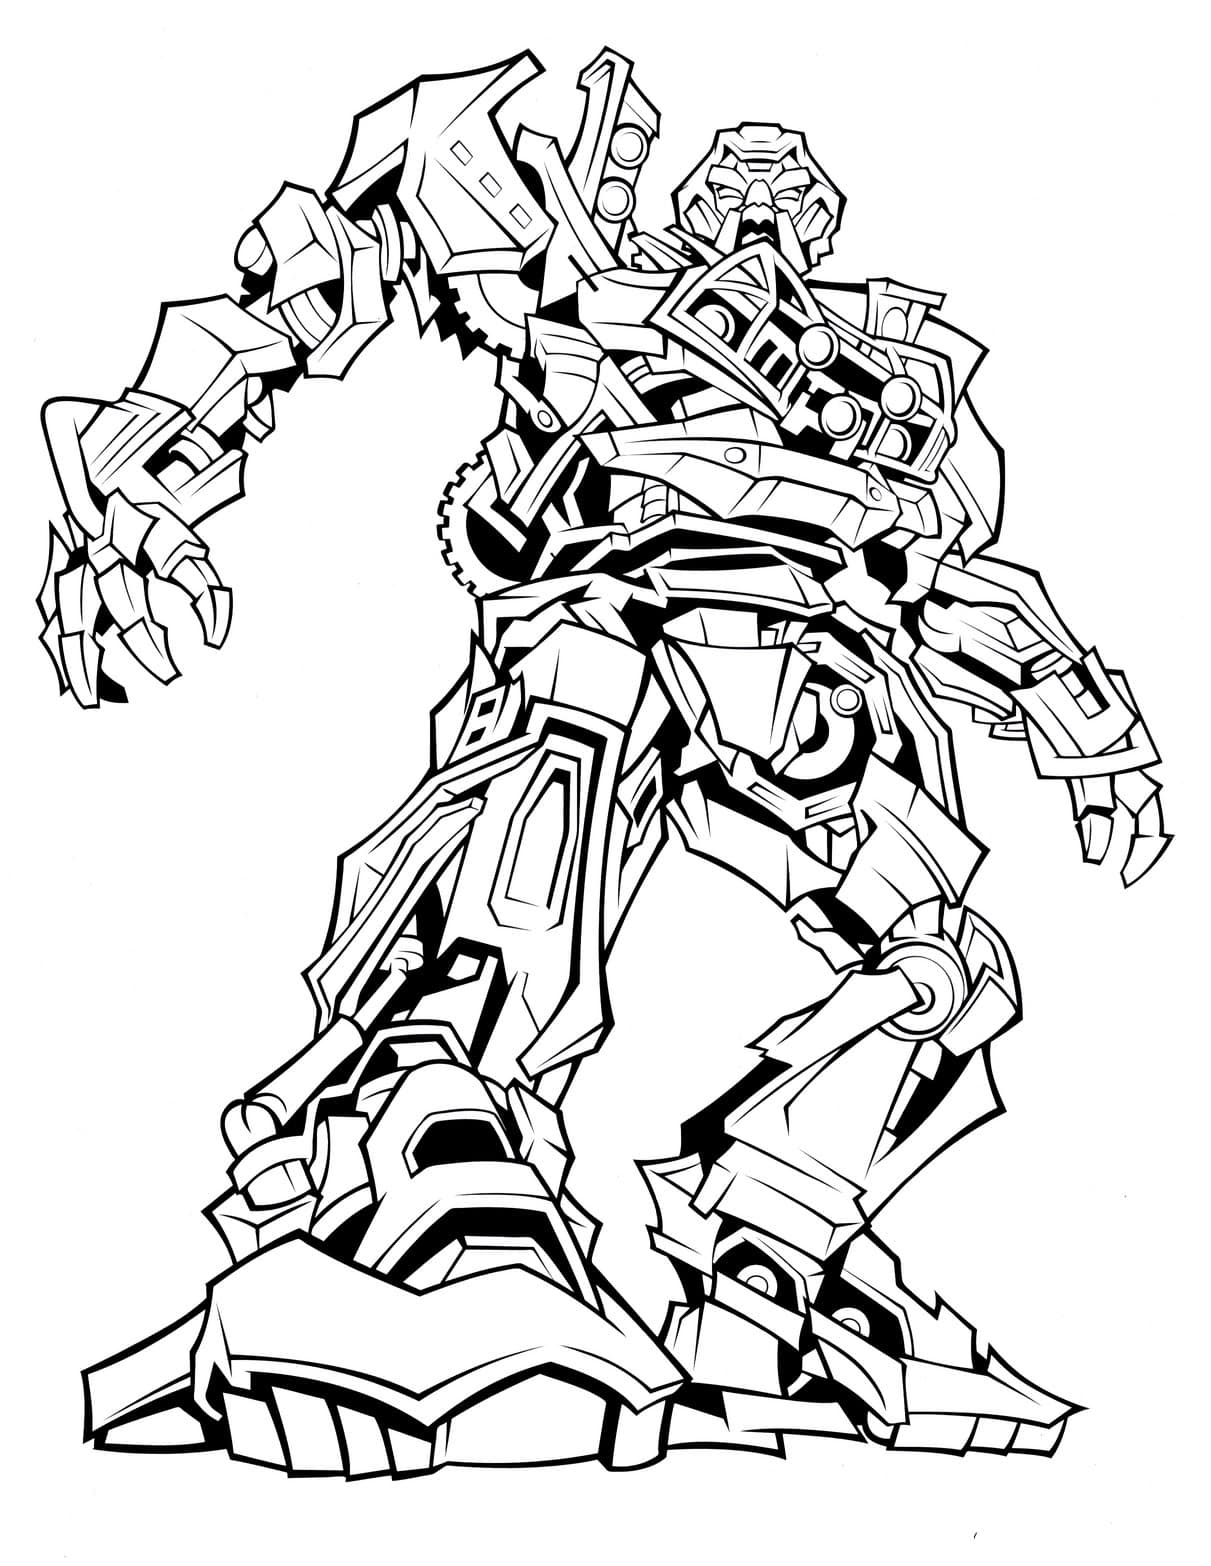 coloring transformers transformers coloring pages free download on clipartmag coloring transformers 1 1